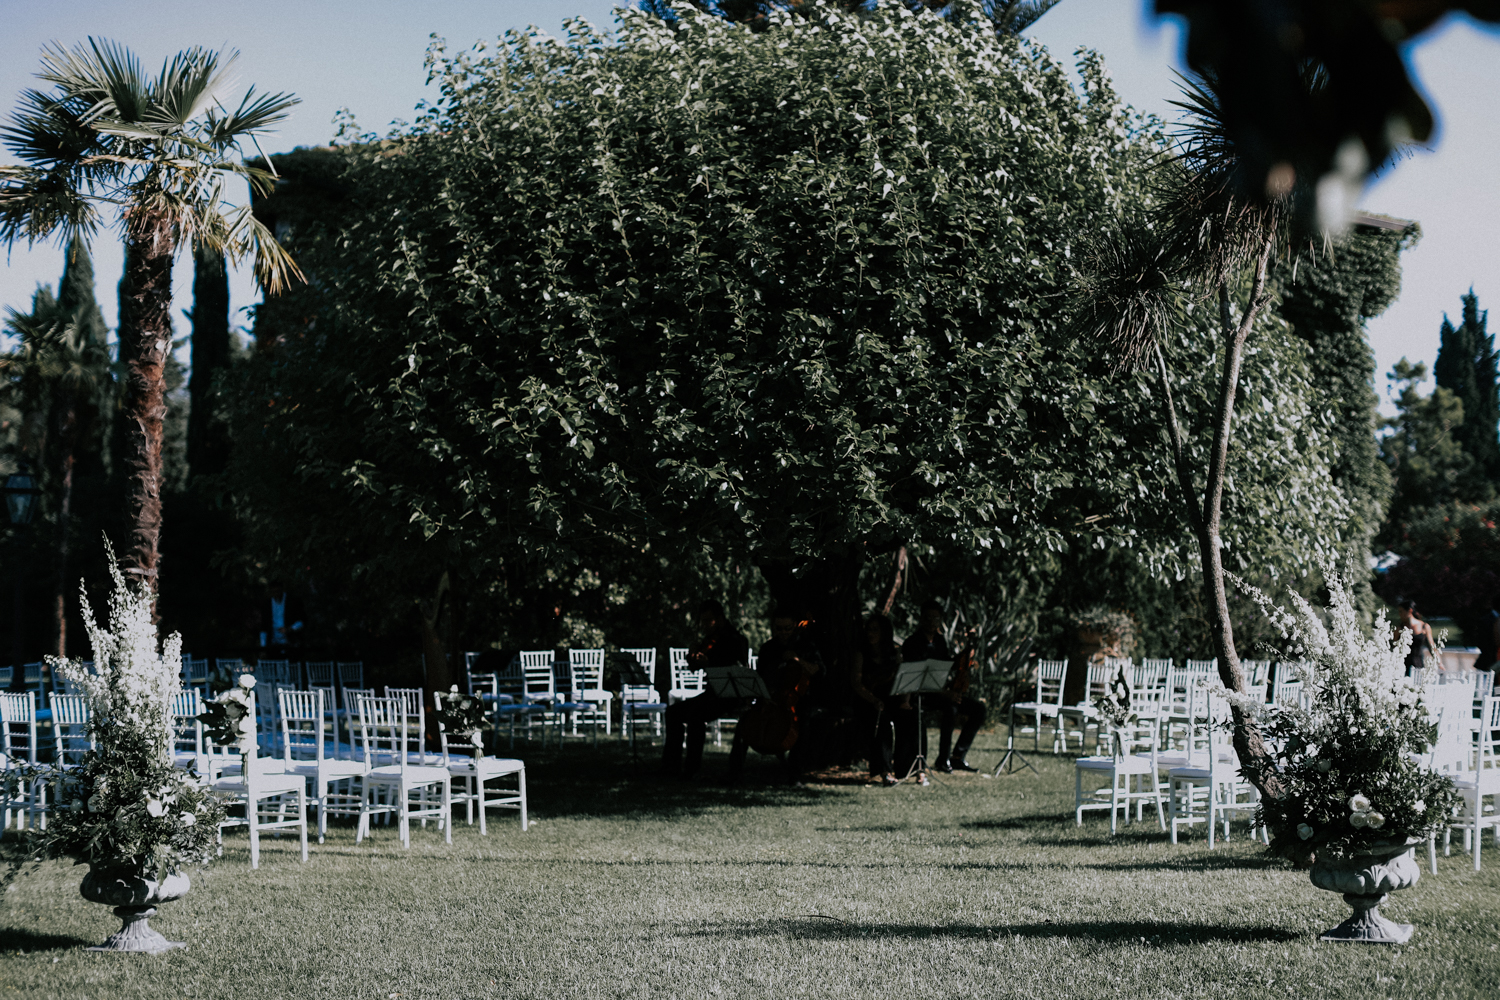 http://www.weddingamalfi.com/wp-content/uploads/Alessandro-and-Diego-garden-wedding-ceremony.jpg